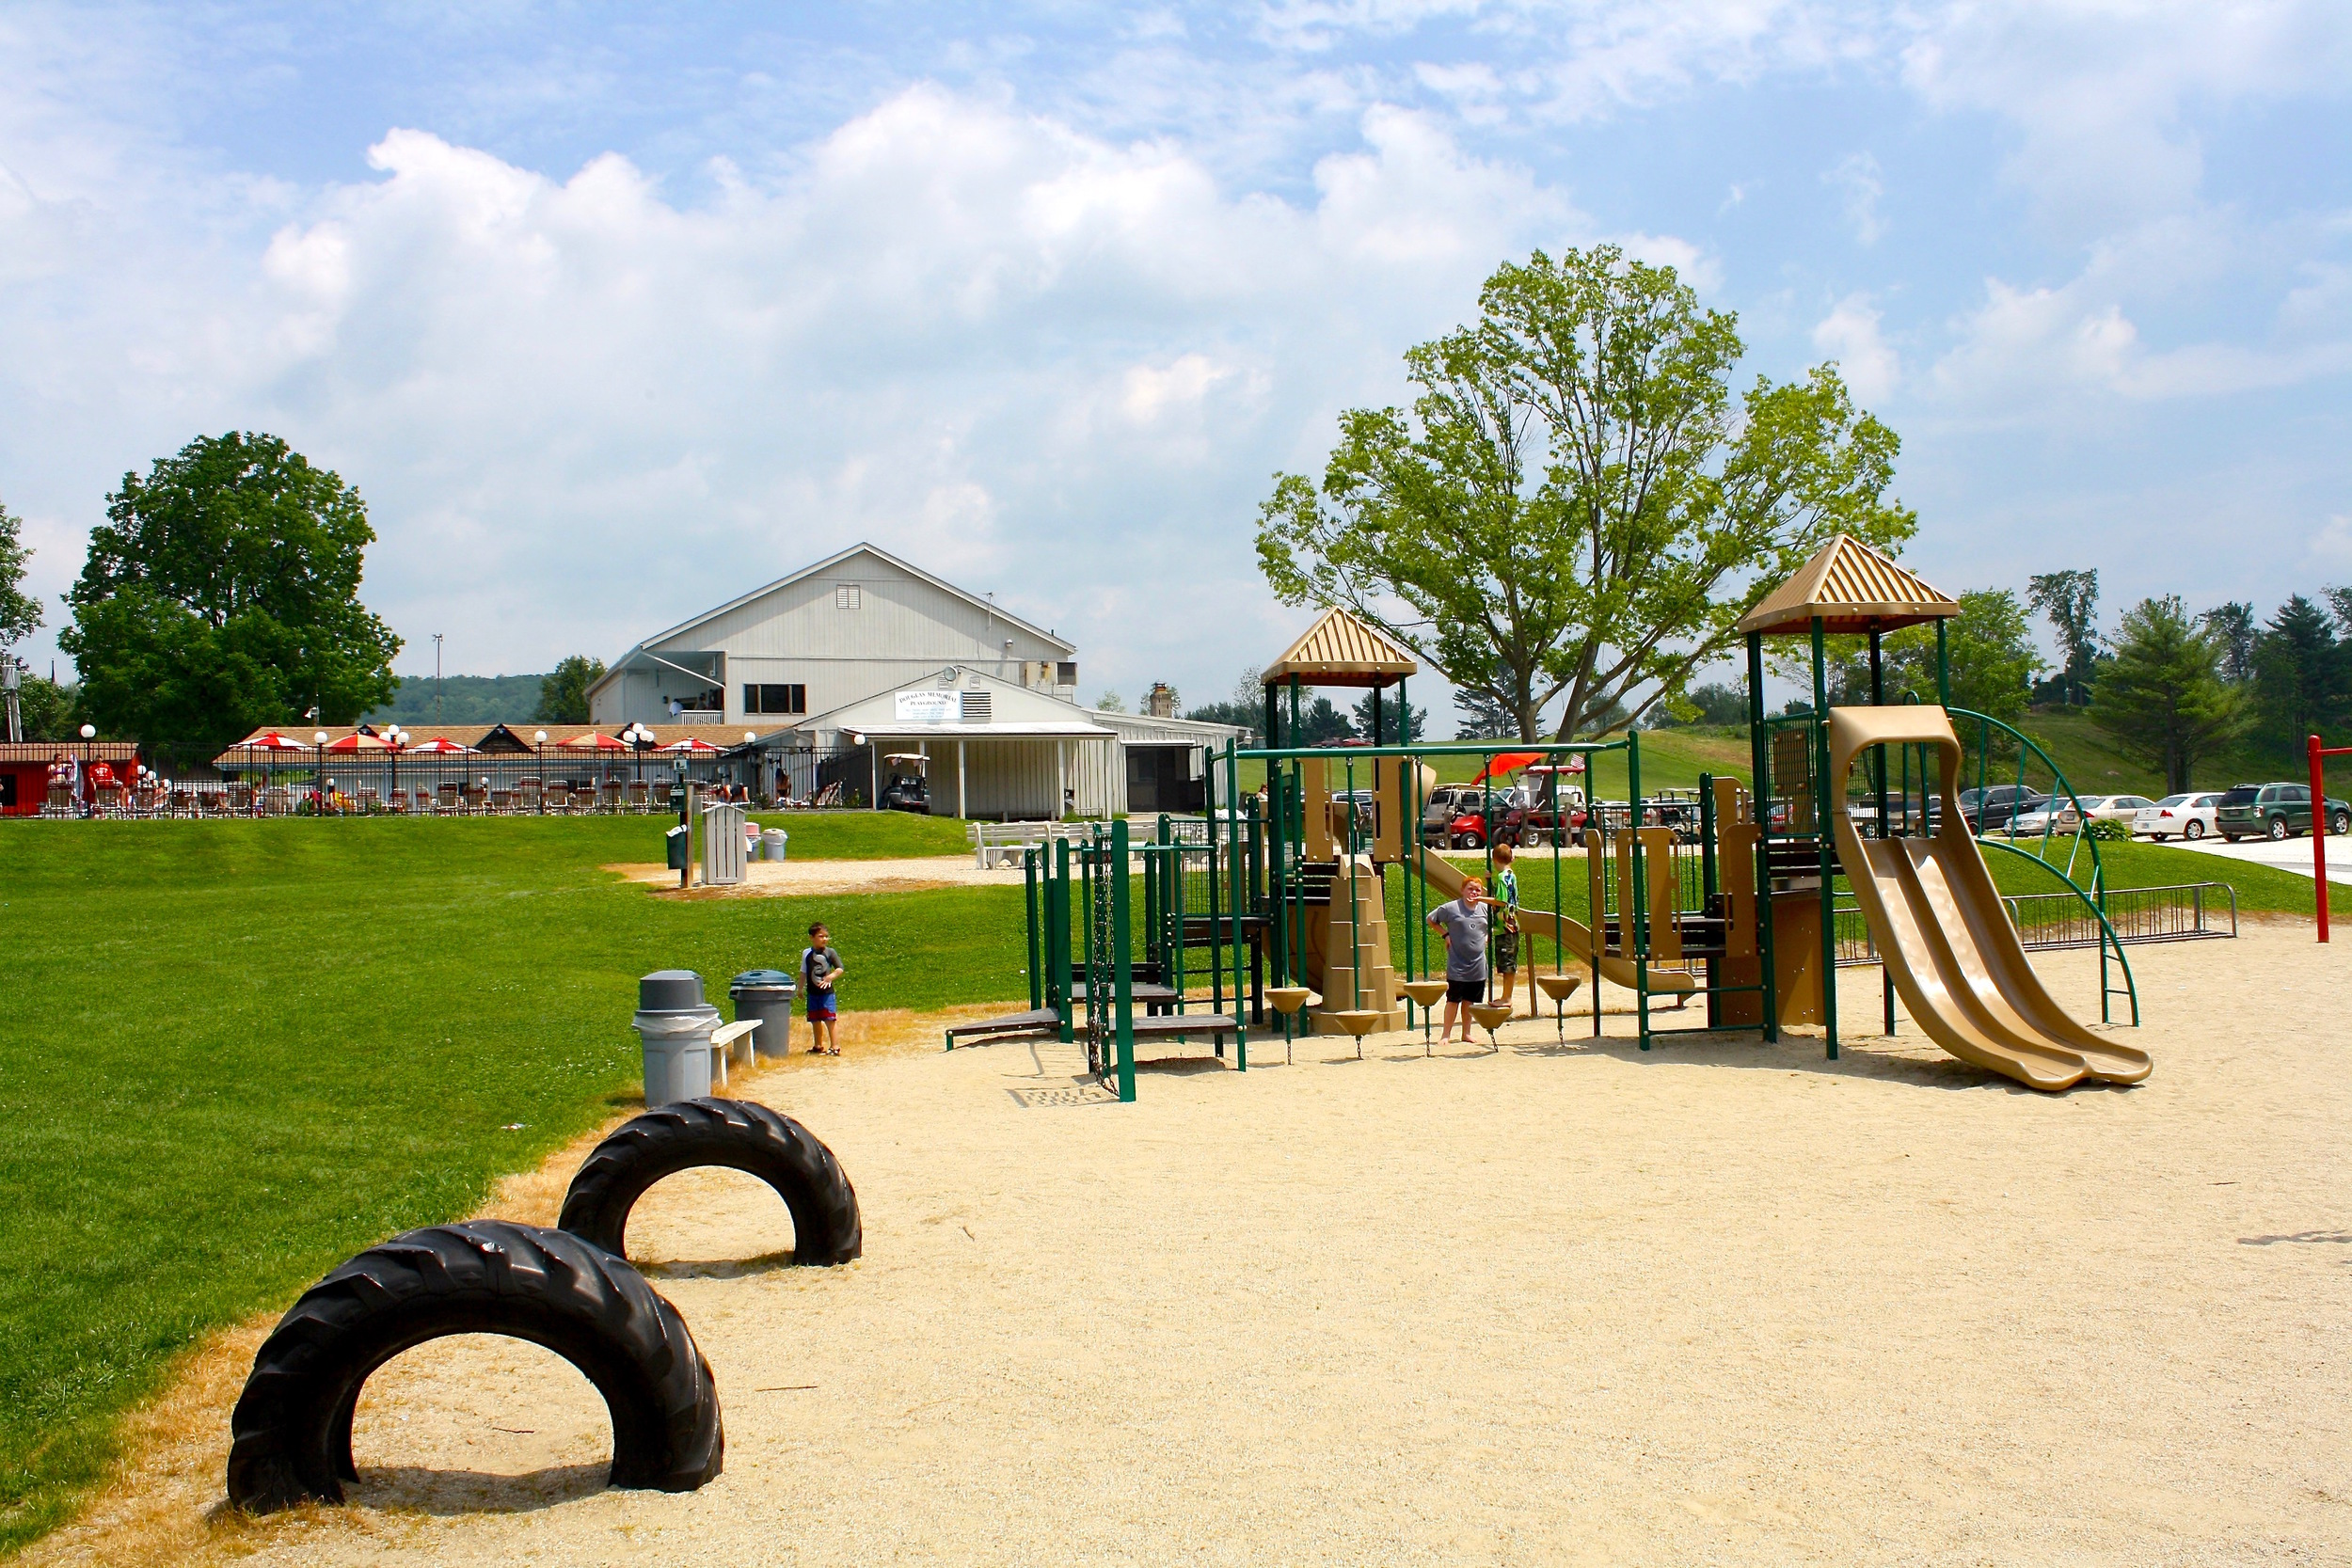 playground is open to all ages